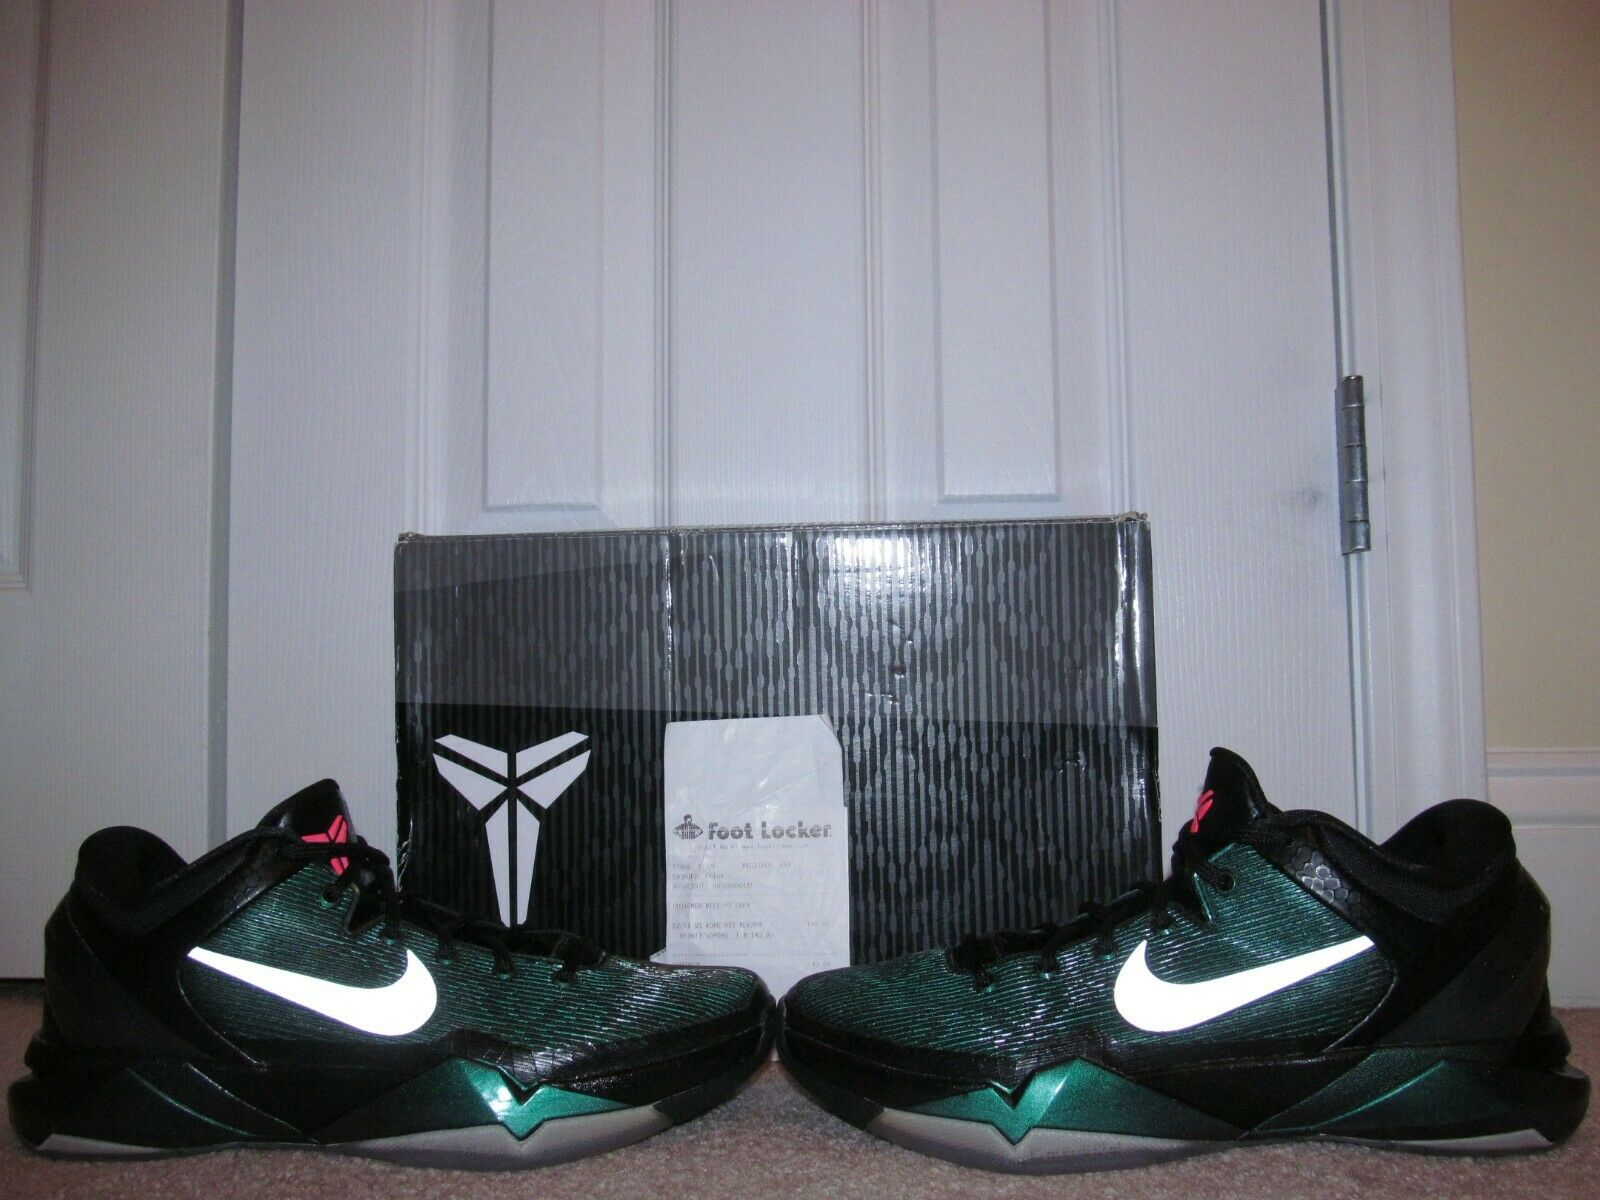 2012 NIKE KOBE VII (7) INVISIBILITY CLOAK size 8 WORN ONCE w Box & Receipt RARE